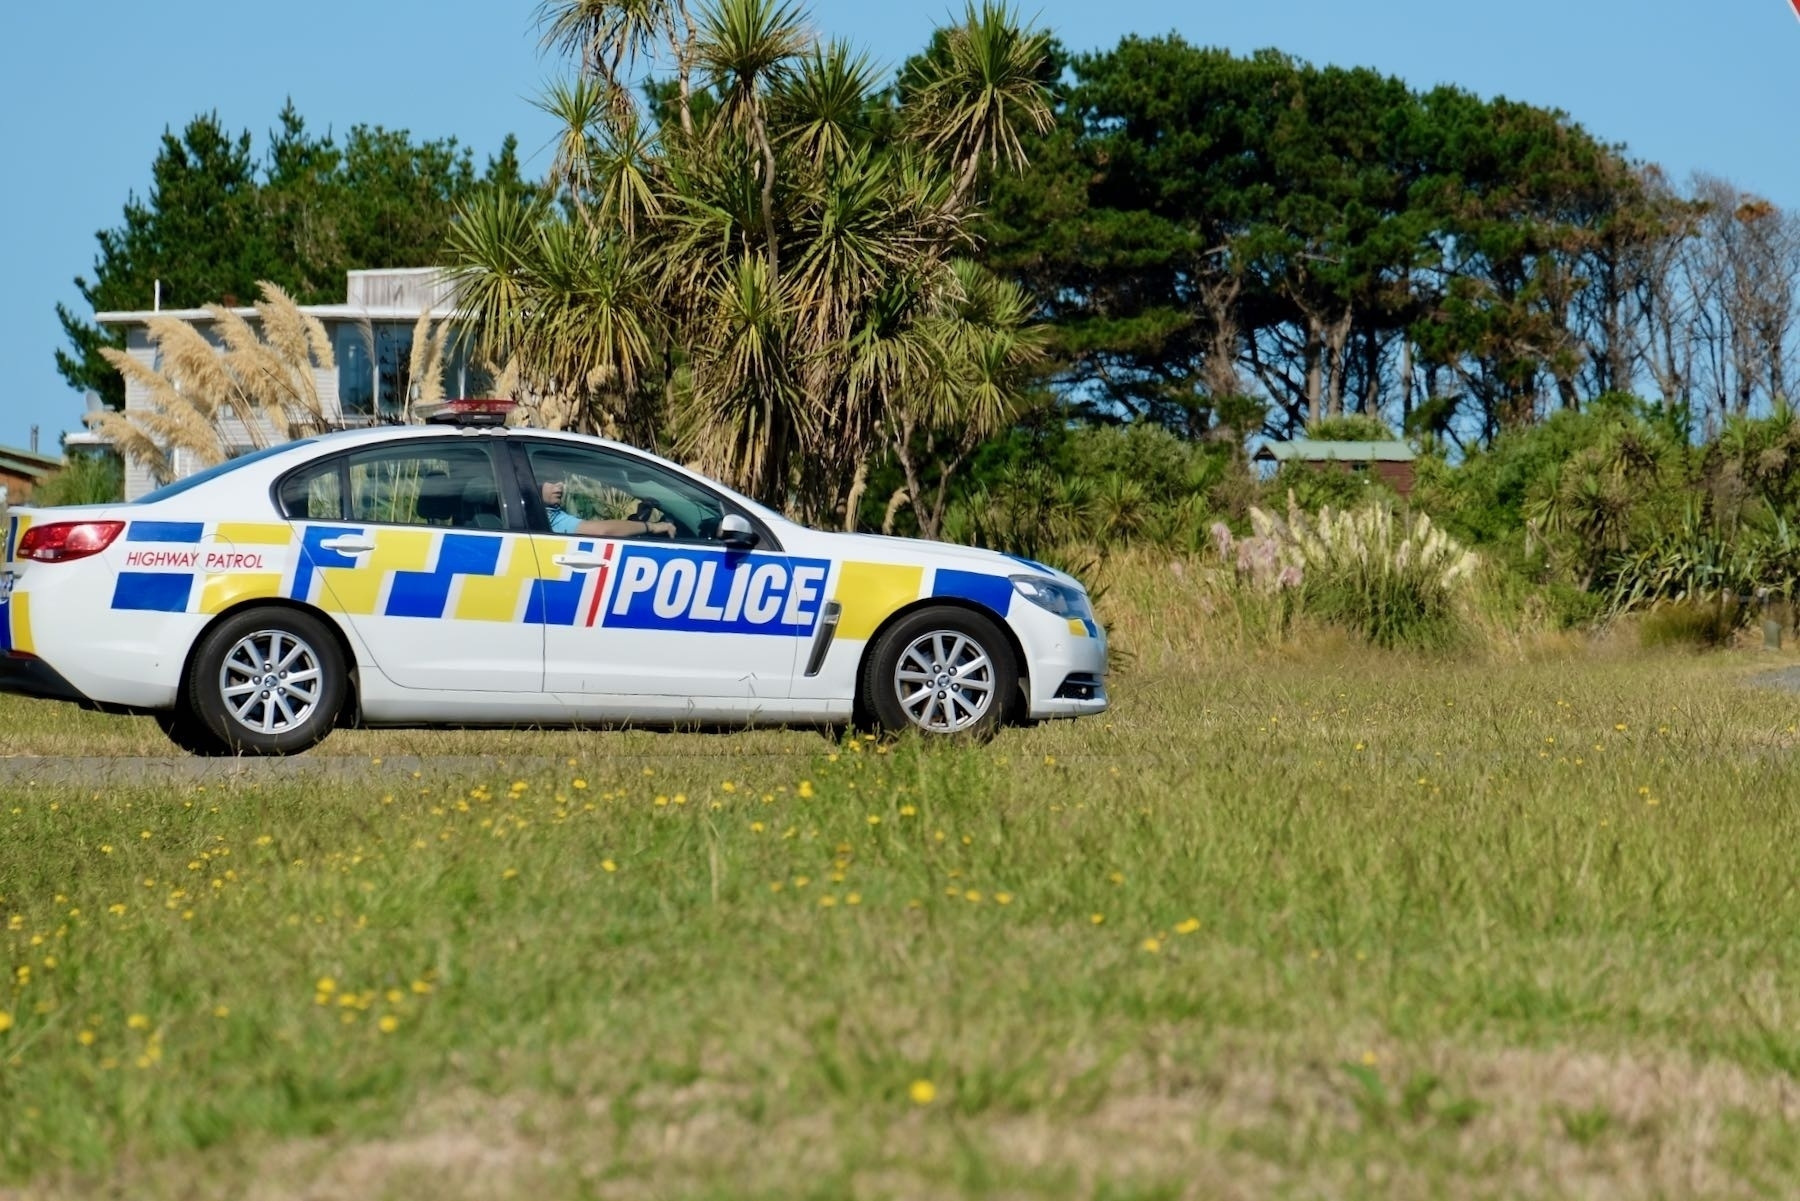 Police car on a local road.